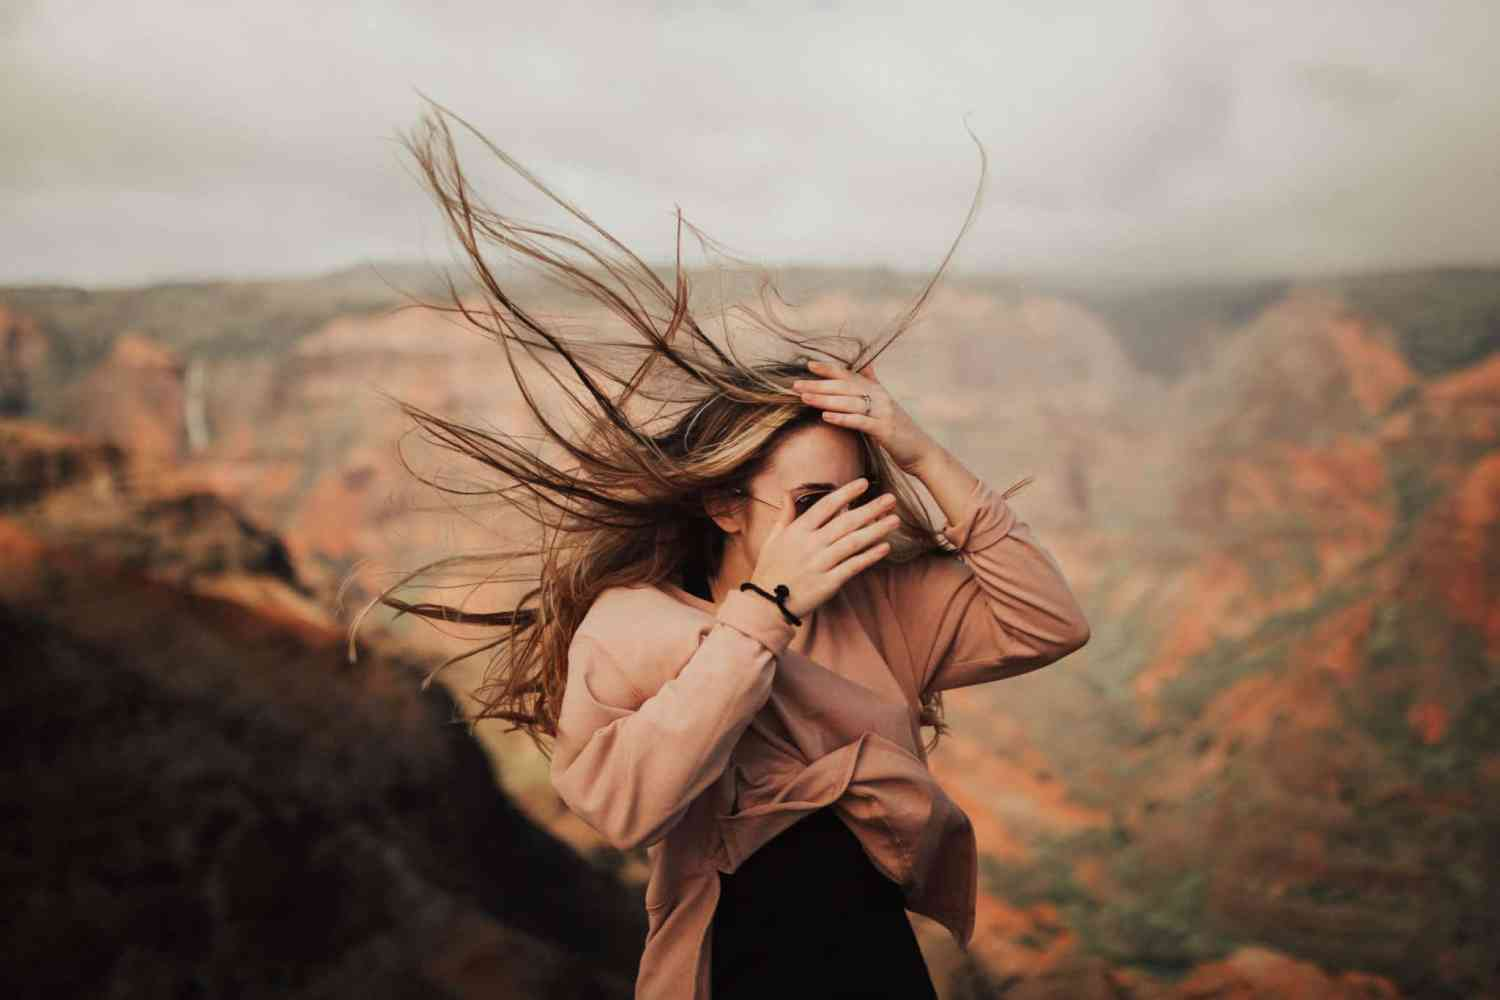 Blowing Hair at Waimea Canyon - Travel Photography Tips